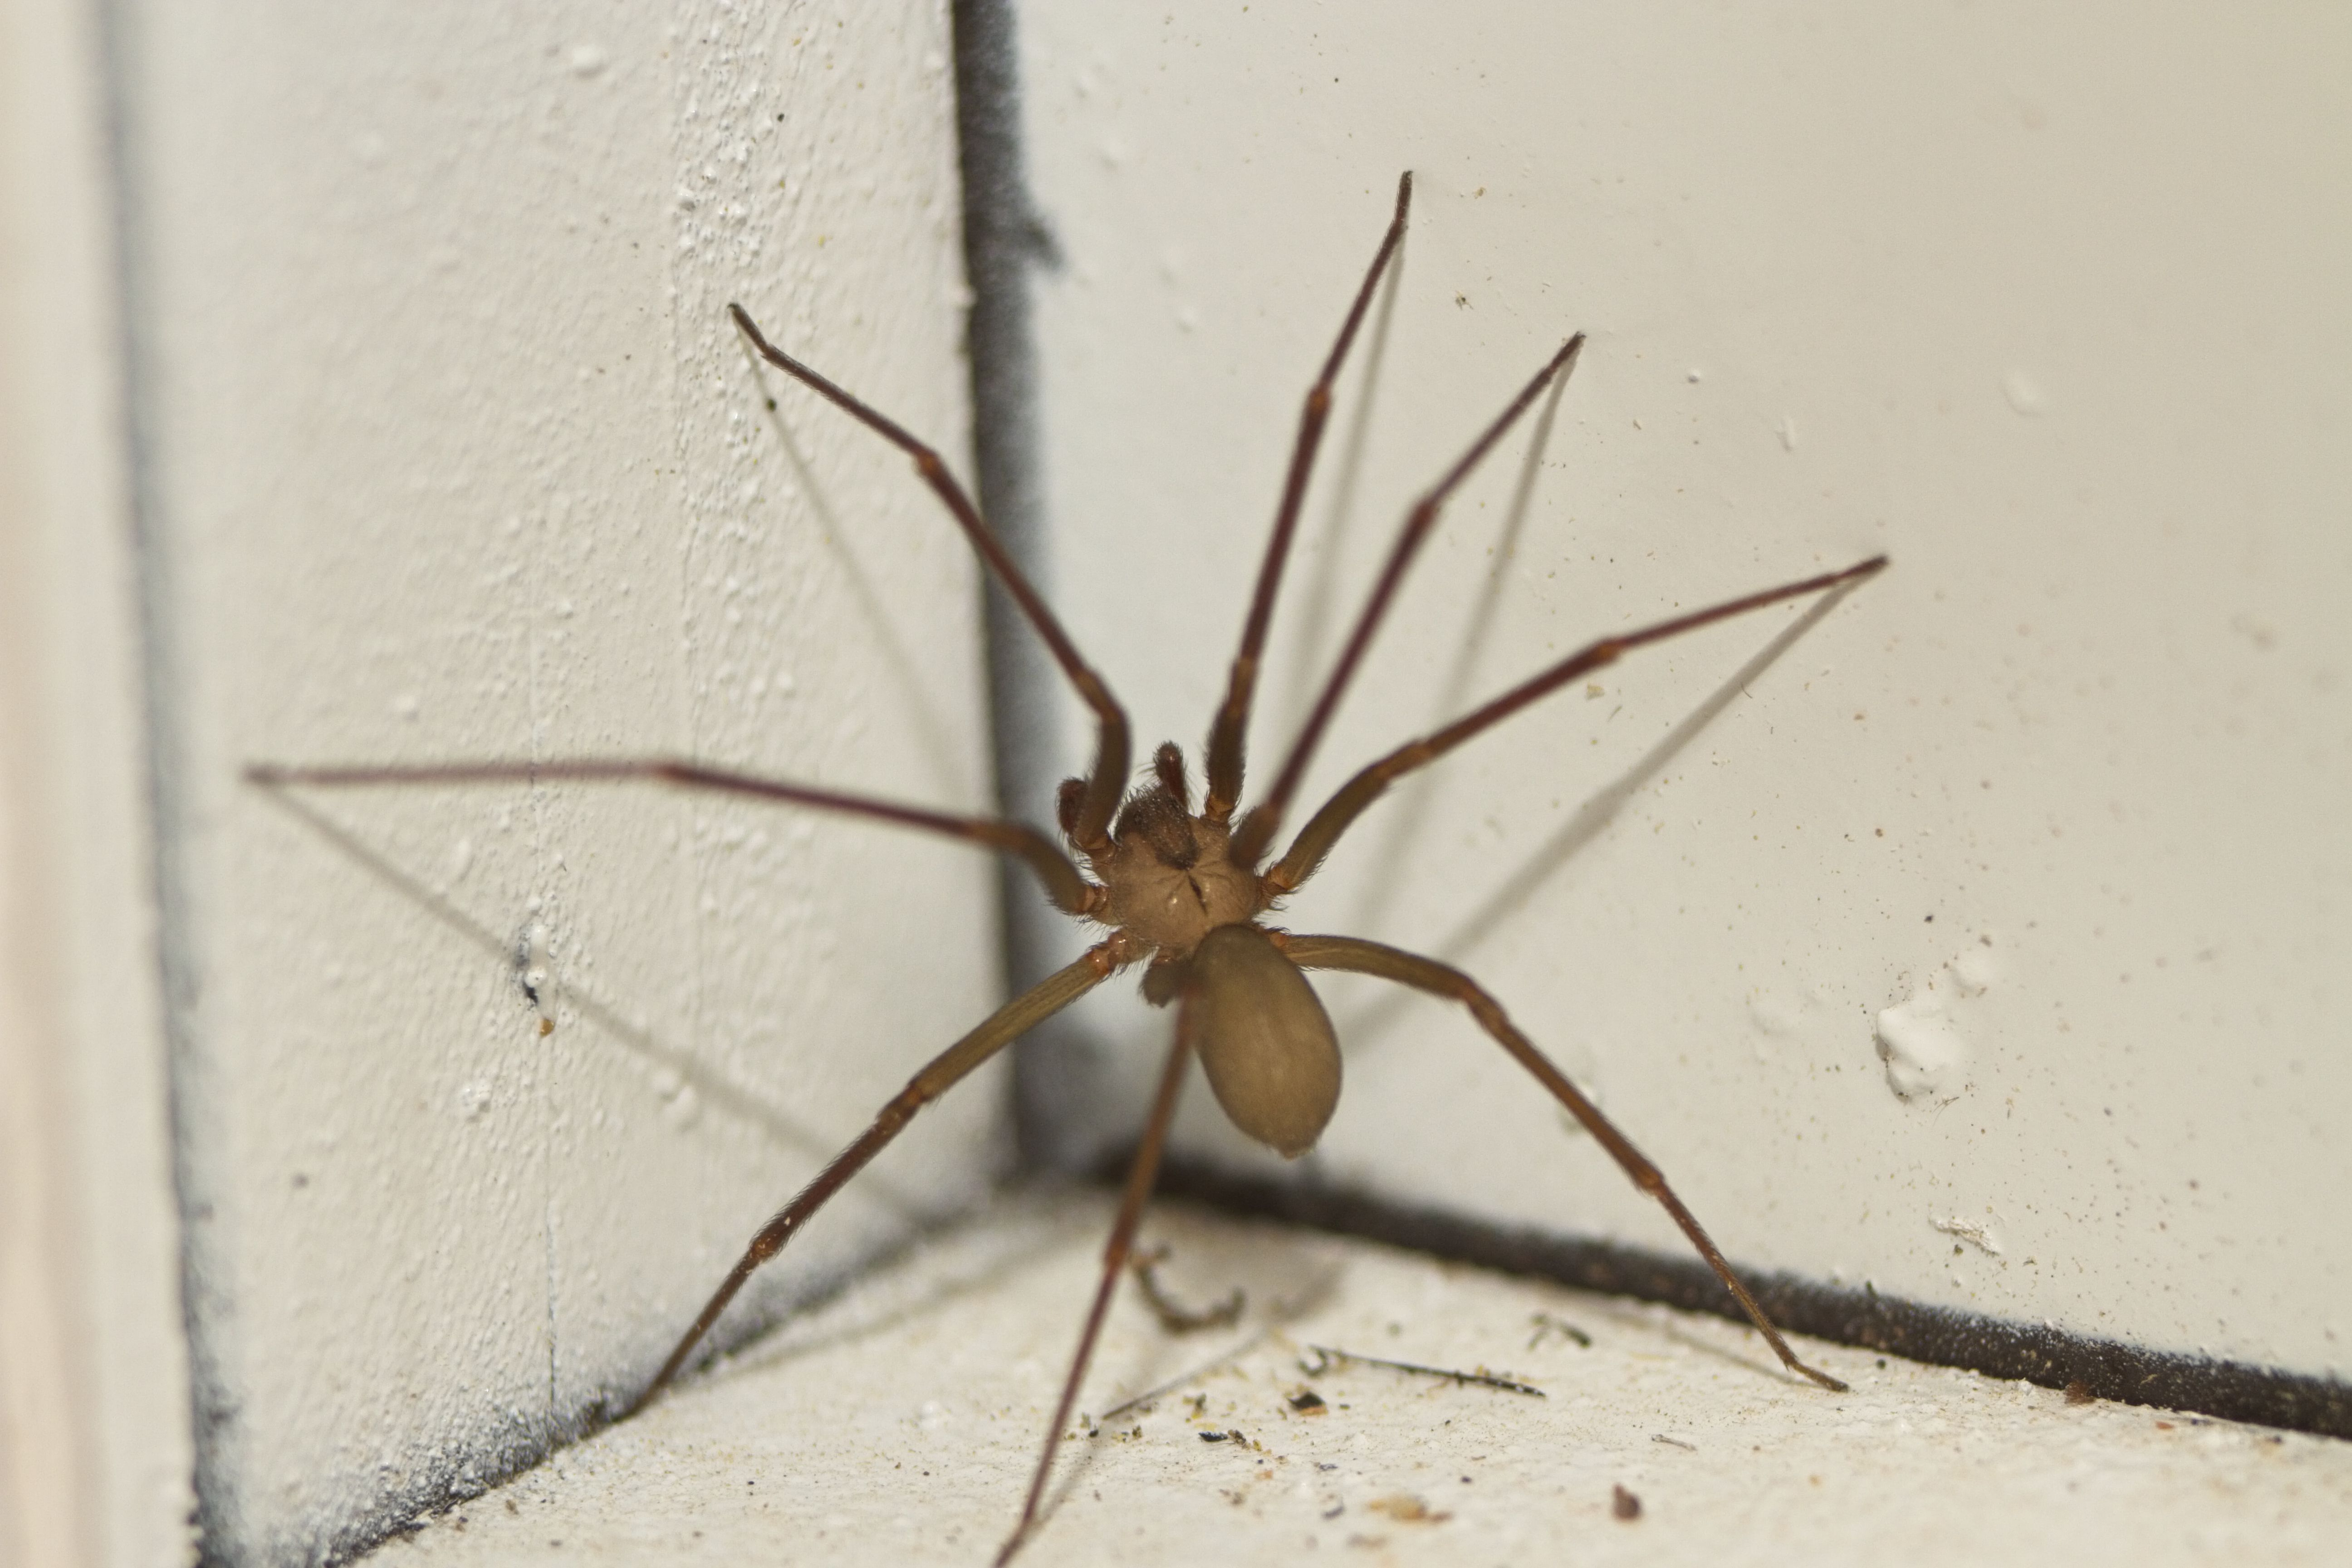 brown recluse images - HD2121×1414